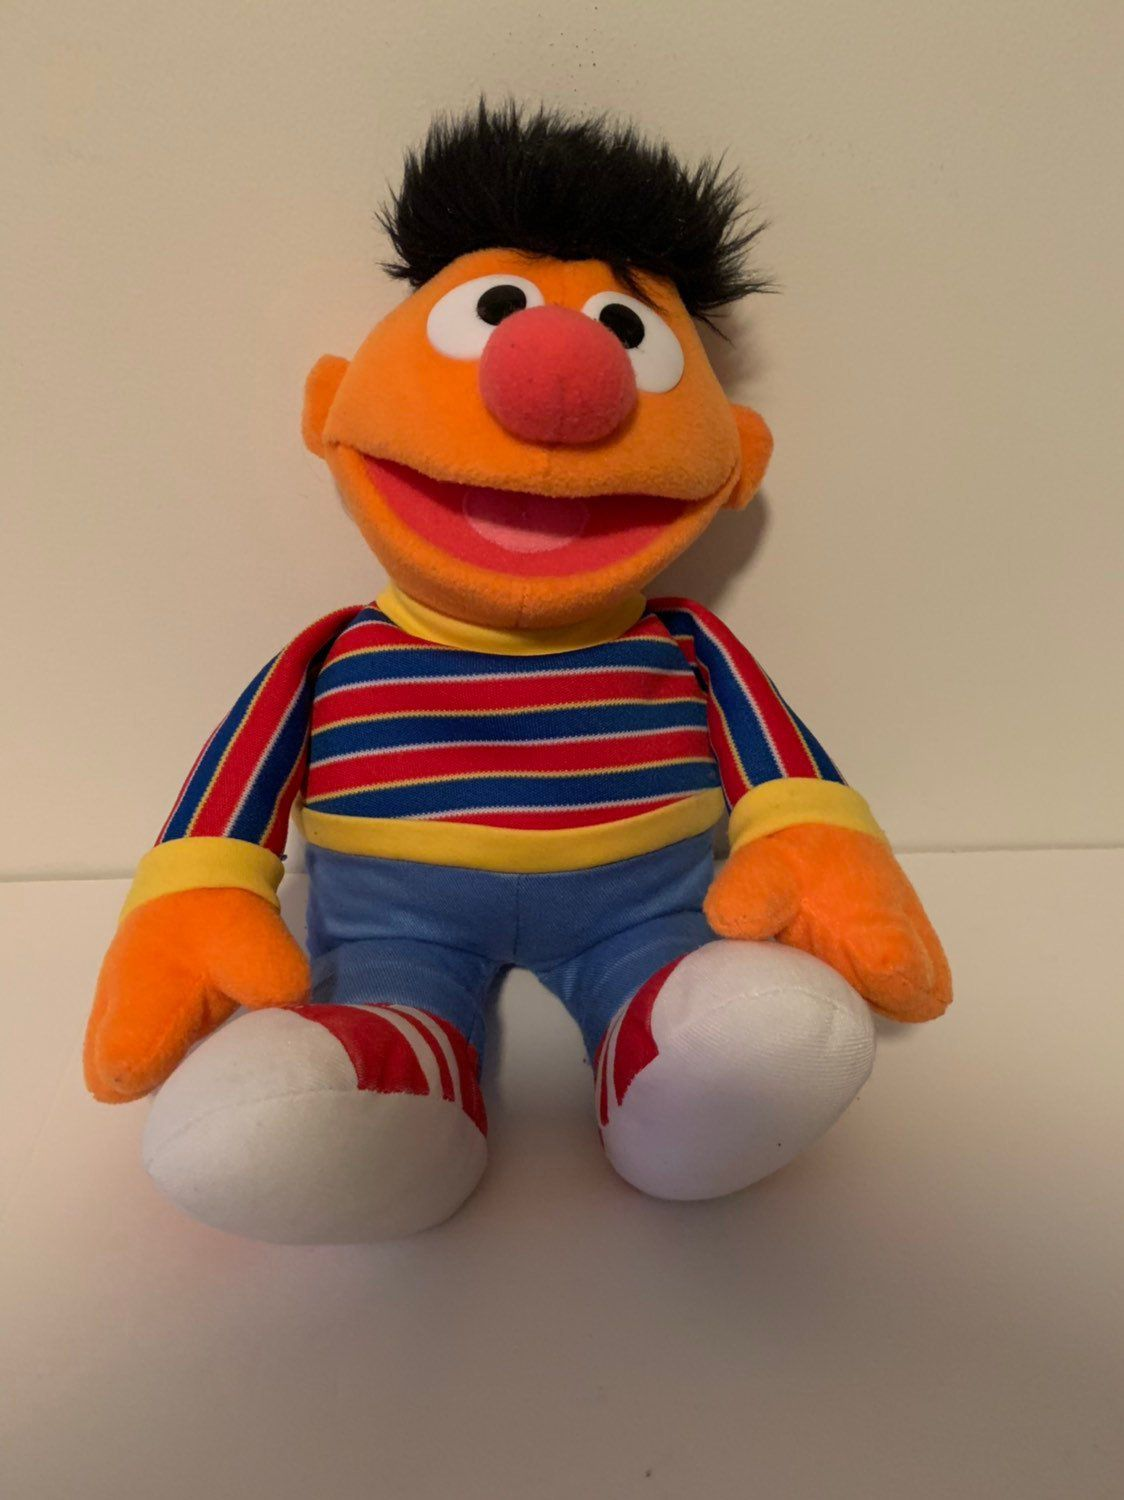 Weighted Stuffed Animal Ernie 1 1 2 Lb Washable Weighted Buddy